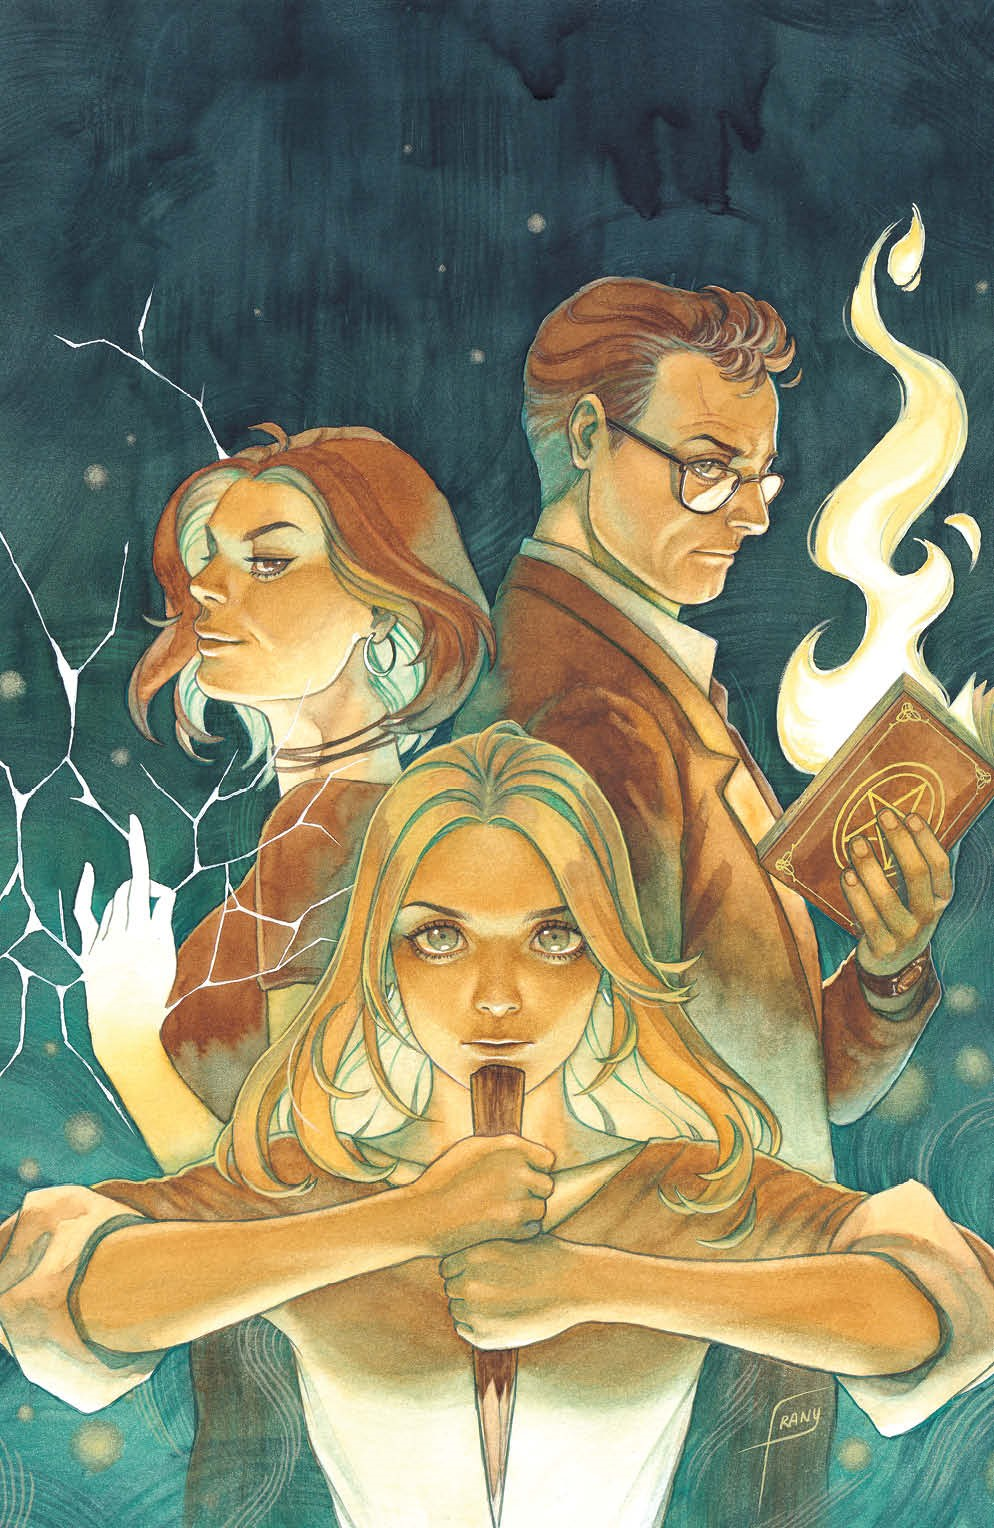 Buffy_030_Cover_C_Variant_Undressed ComicList Previews: BUFFY THE VAMPIRE SLAYER #30